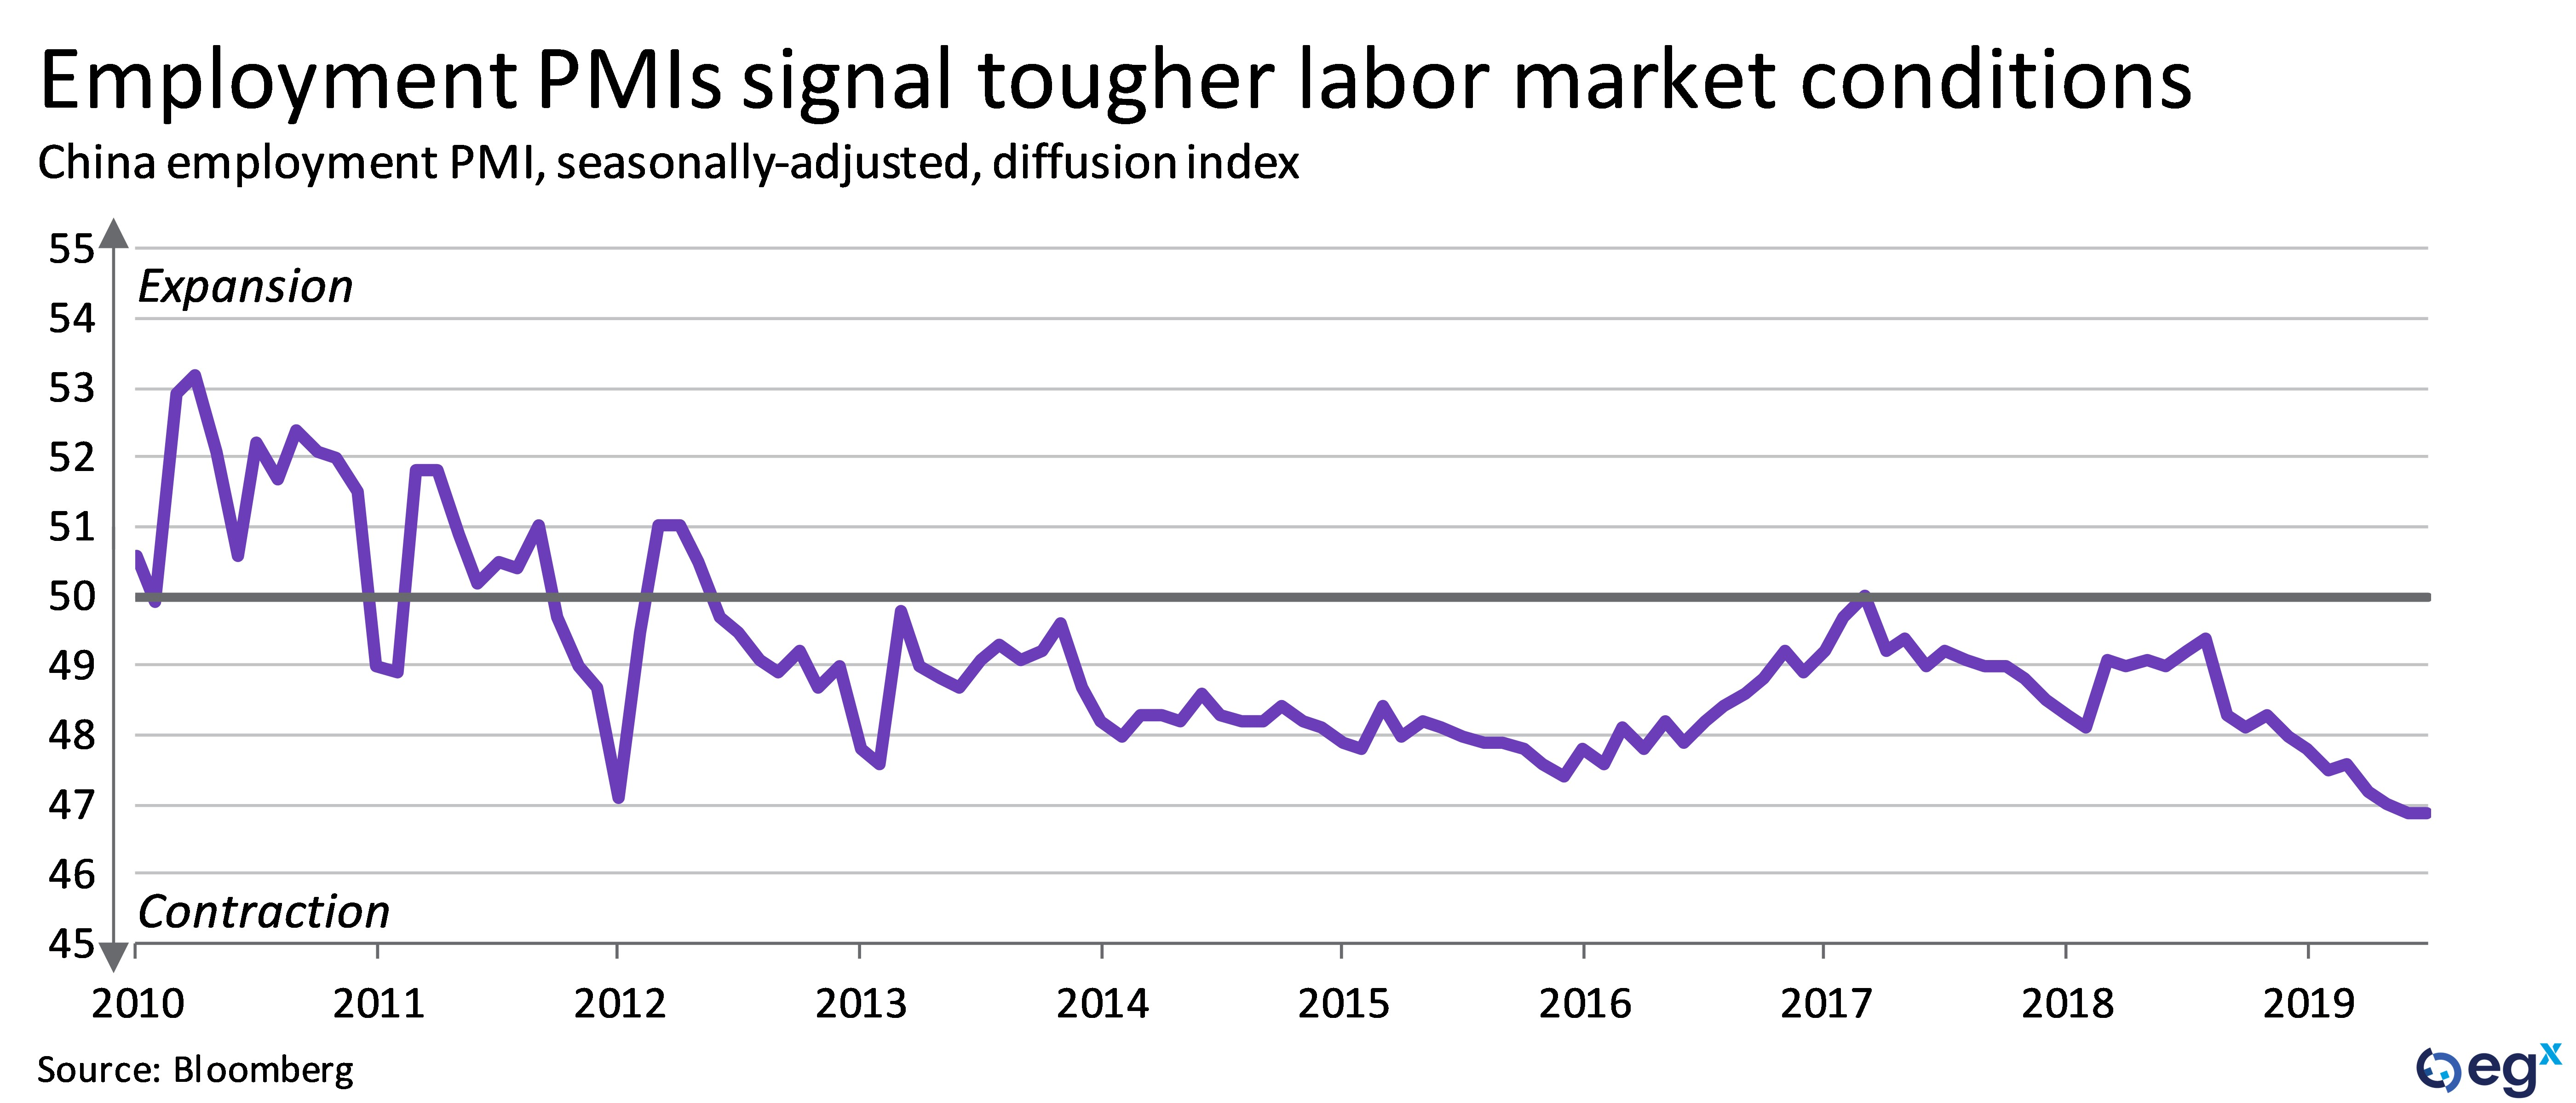 China's employment PMIs signal tougher labor market conditions